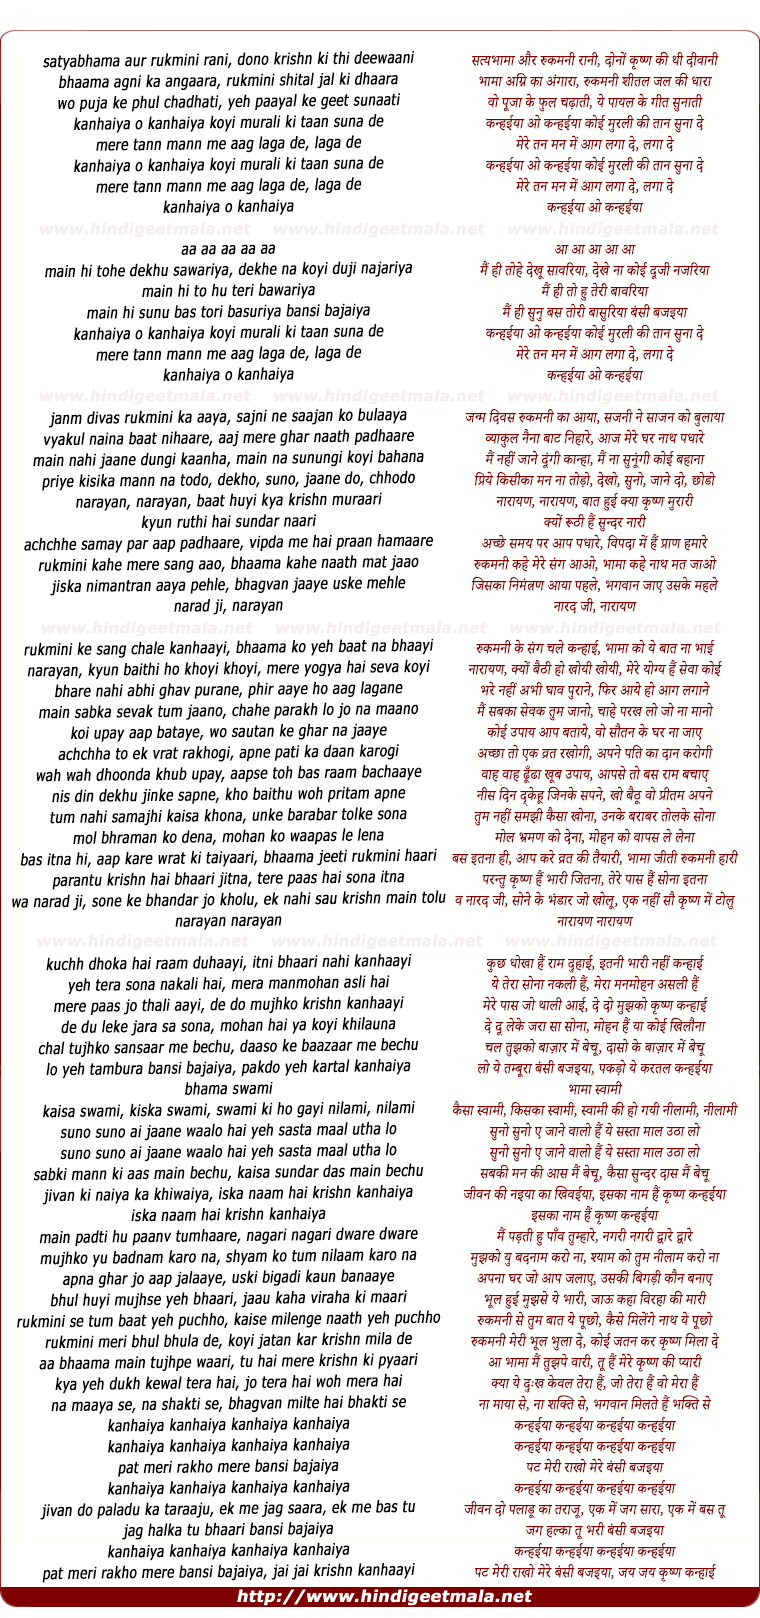 lyrics of song Kanhaiya O Kanhaiya